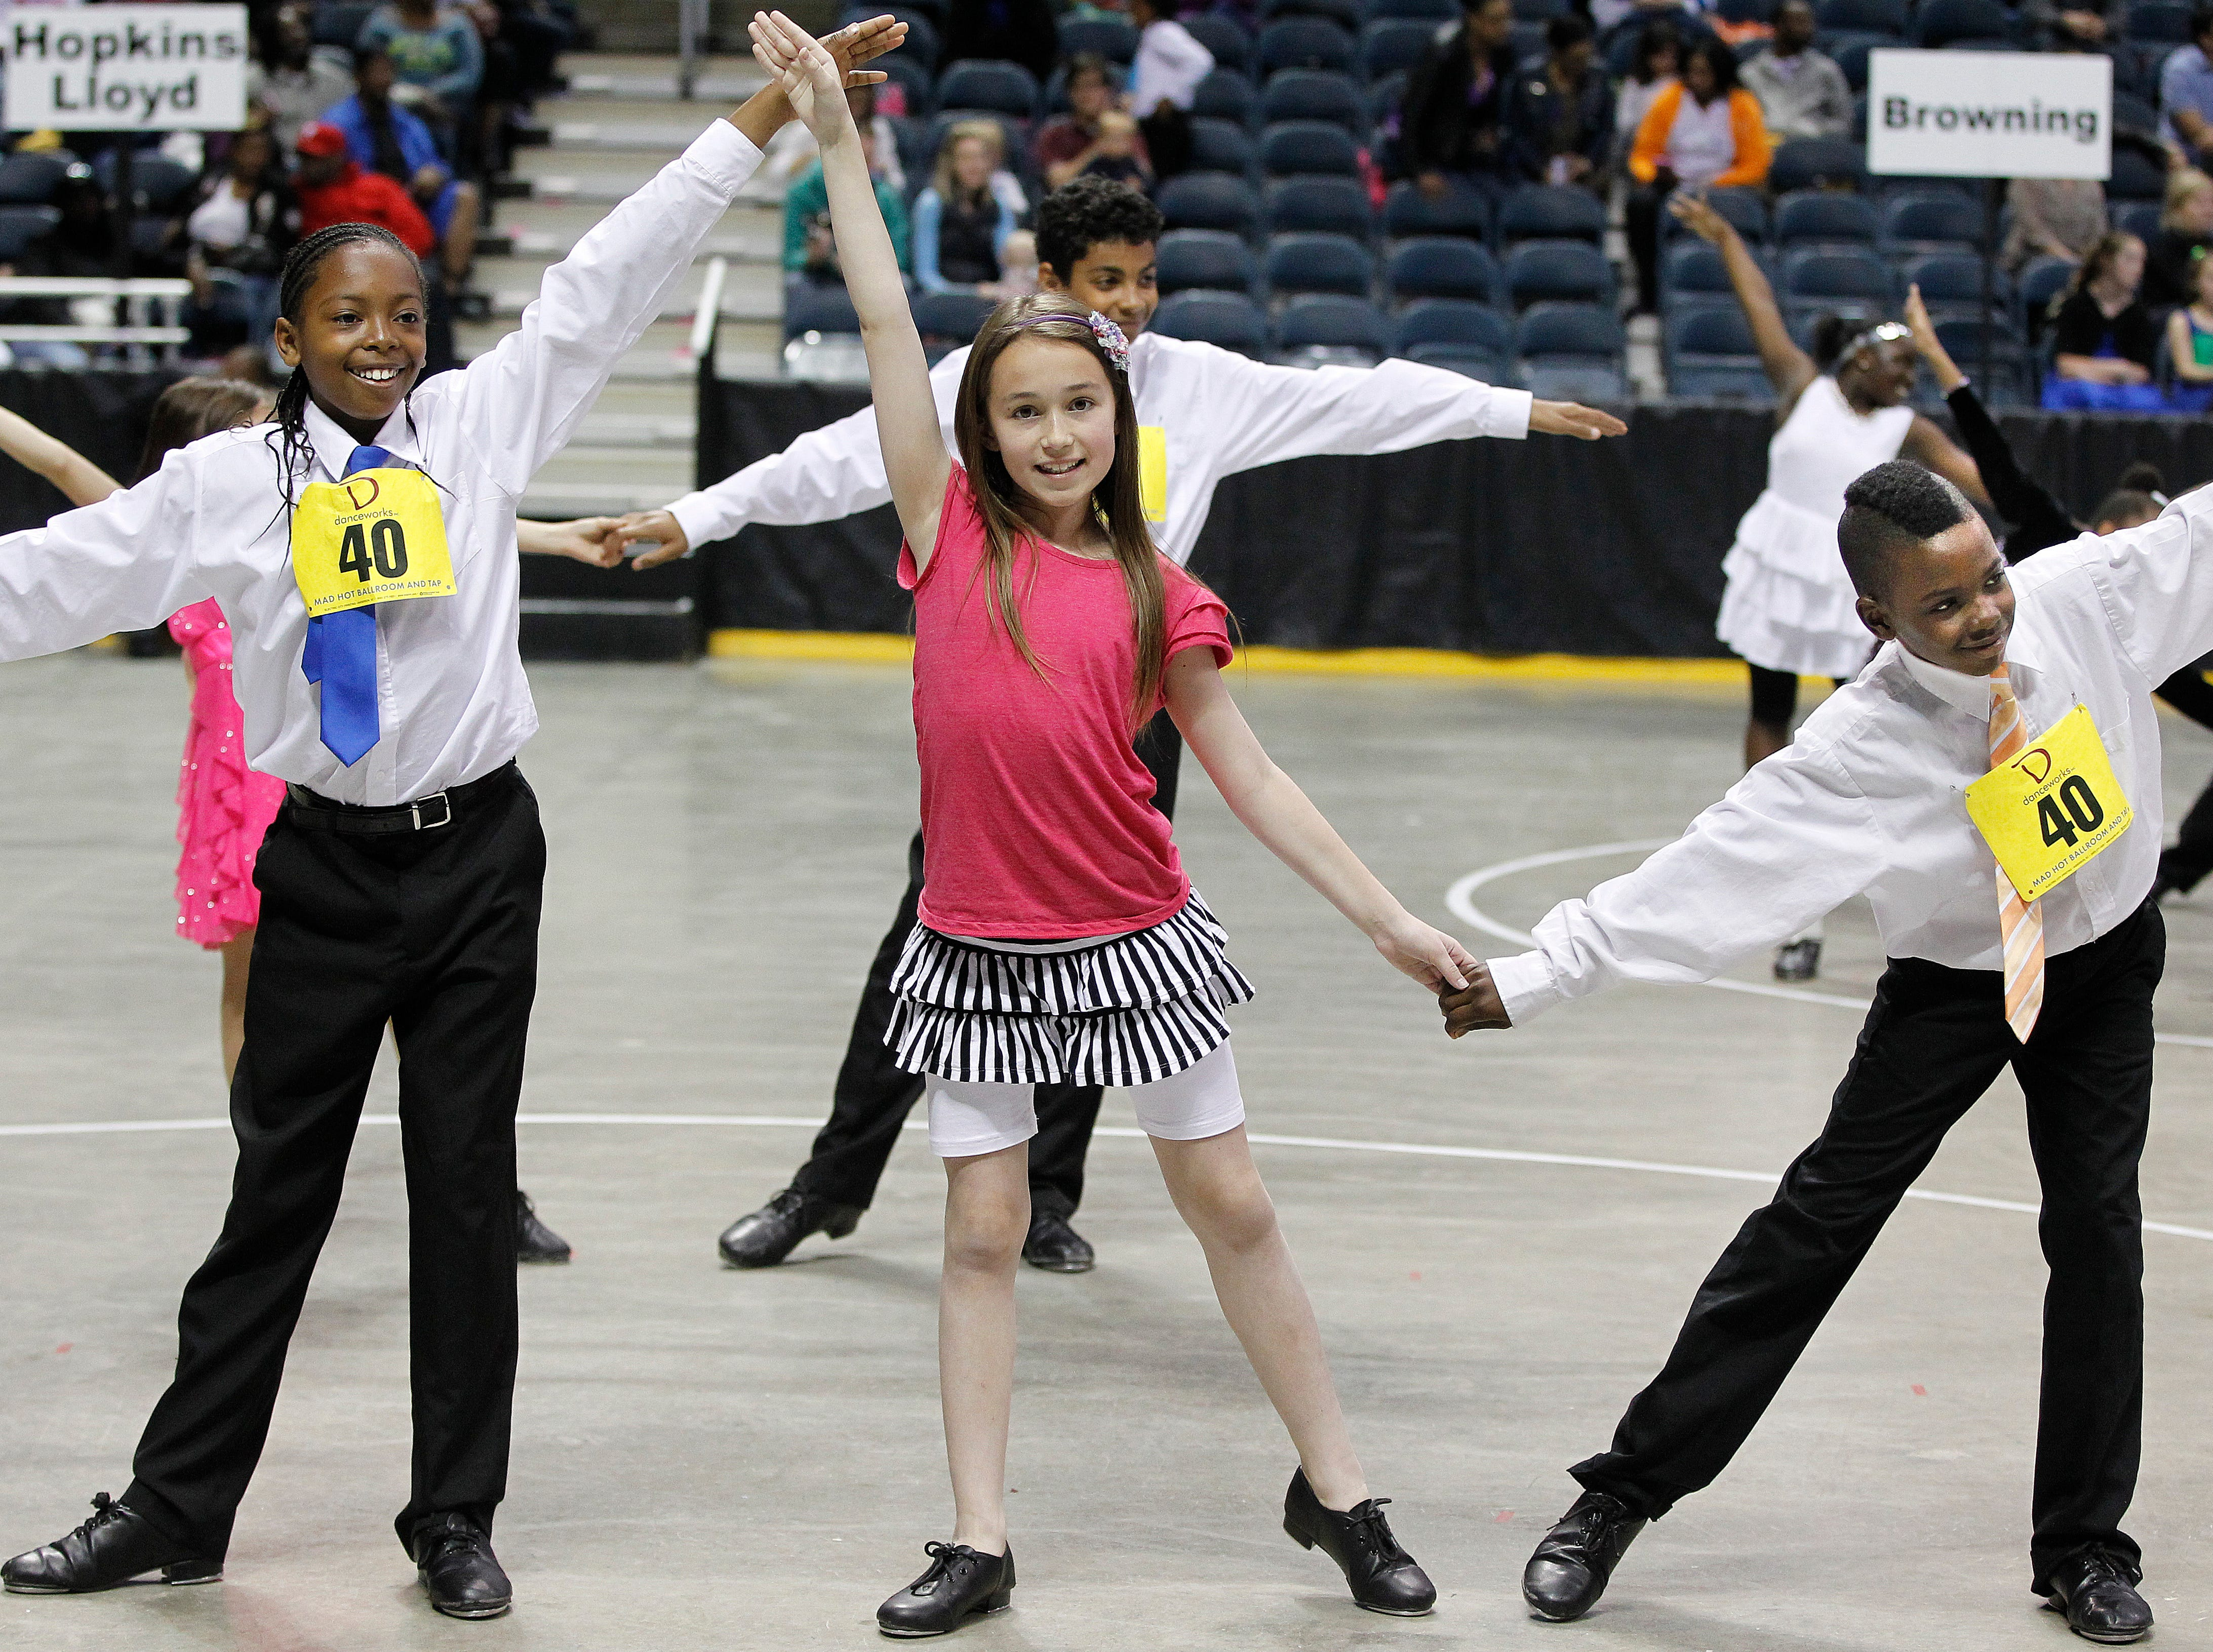 2014: Students from Roosevelt Elementary School strike a pose before dancing during the annual Mad Hot Ballroom and Tap competition at the BMO Harris Bradley Center.